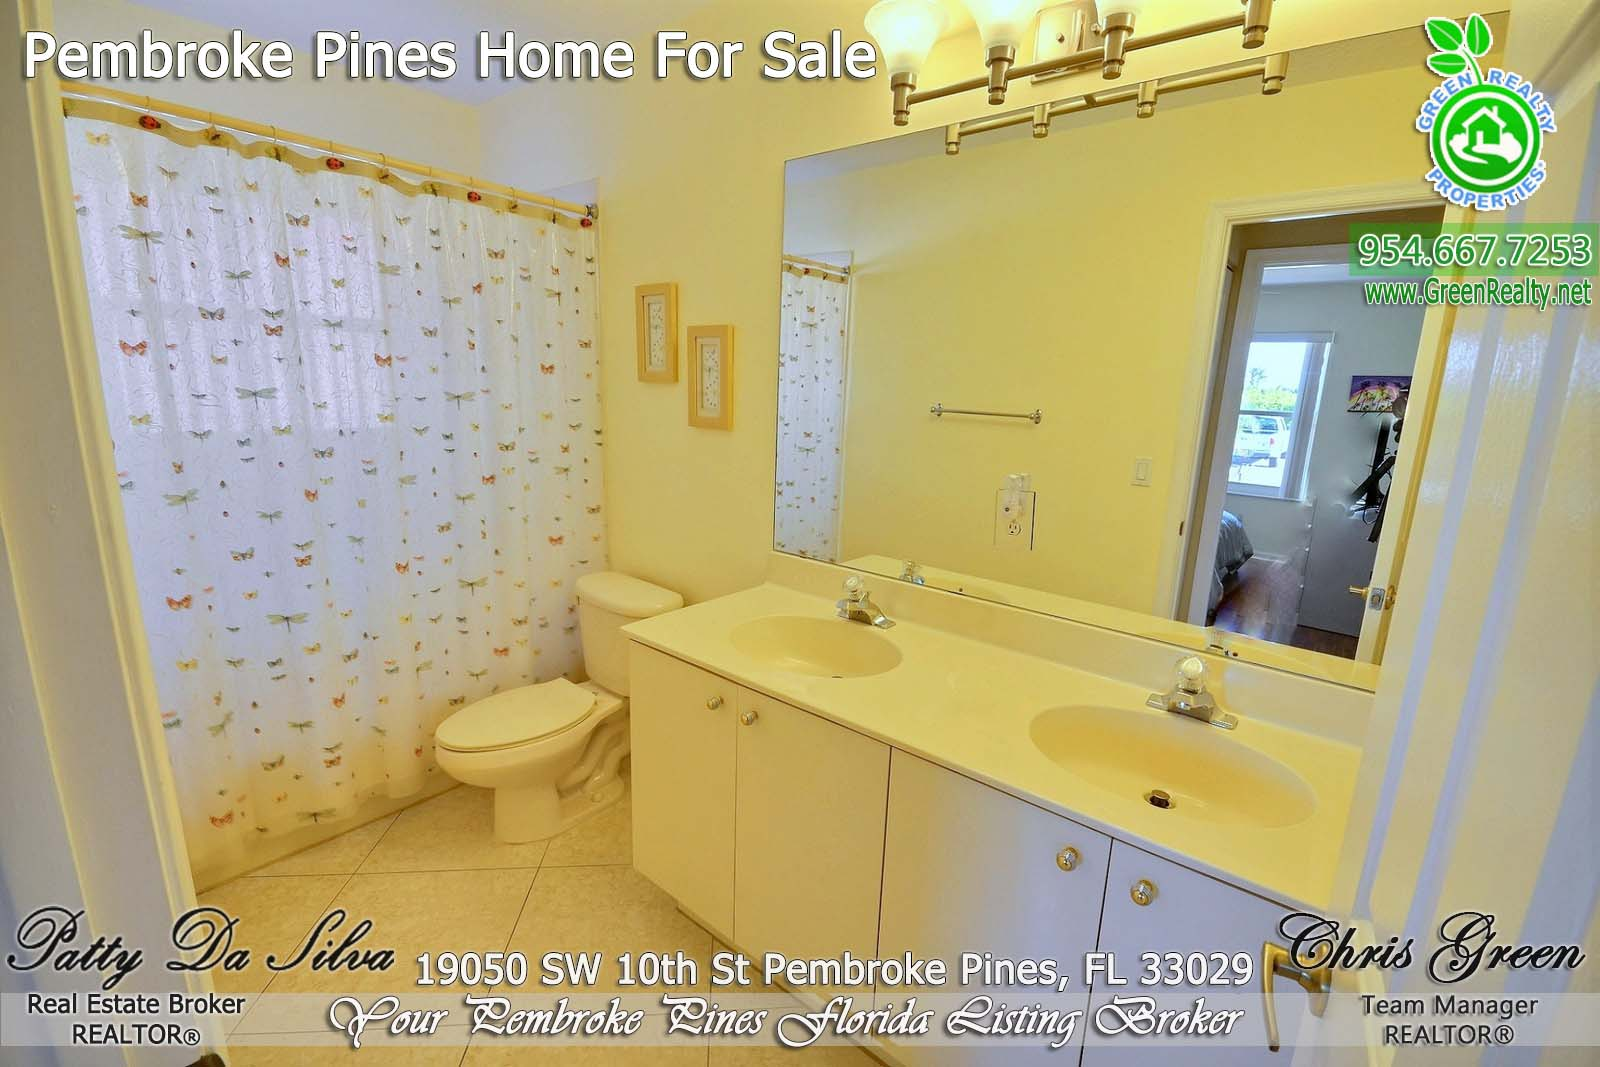 18 Patty Da Silva SELLS Pembroke Pines Homes (1)